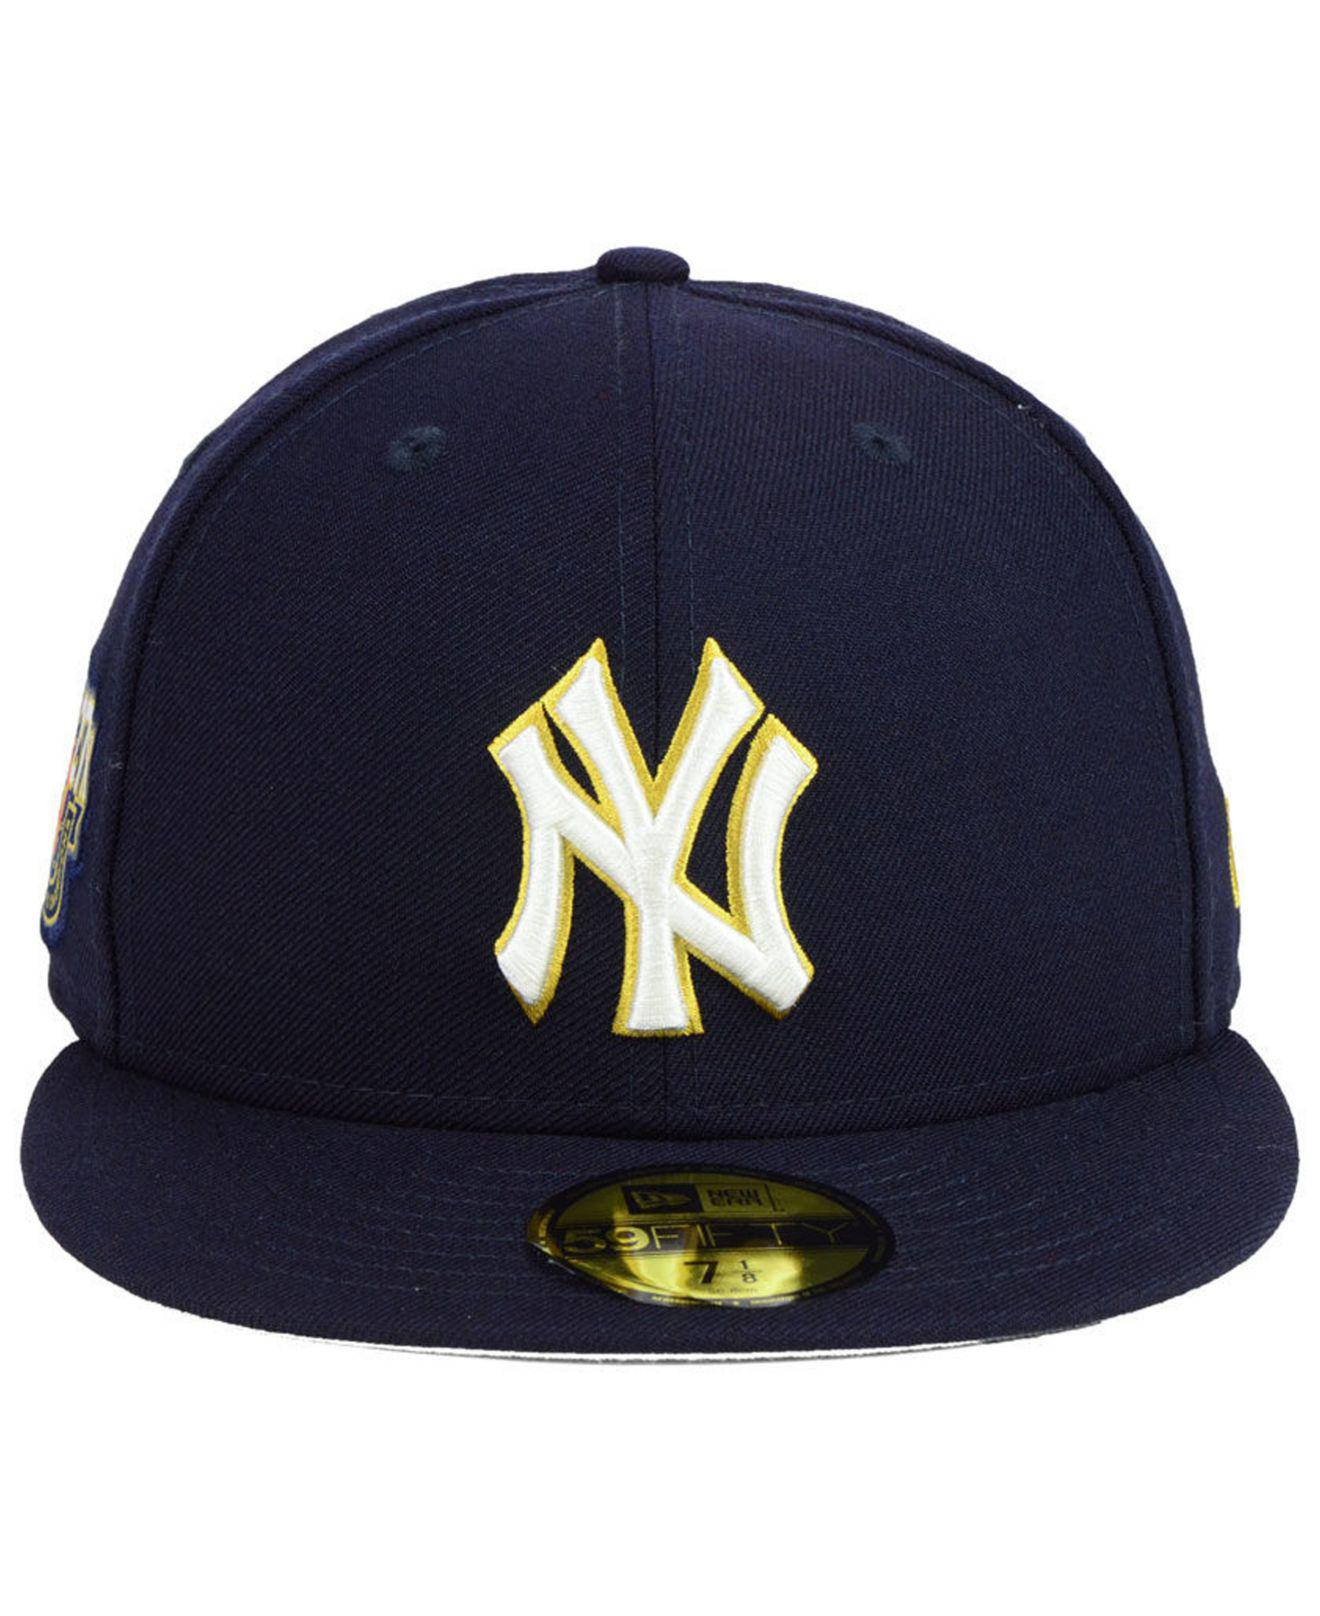 premium selection 3d125 b02f6 ... low cost lyst ktz new york yankees trophy patch 59fifty fitted cap in  blue for men